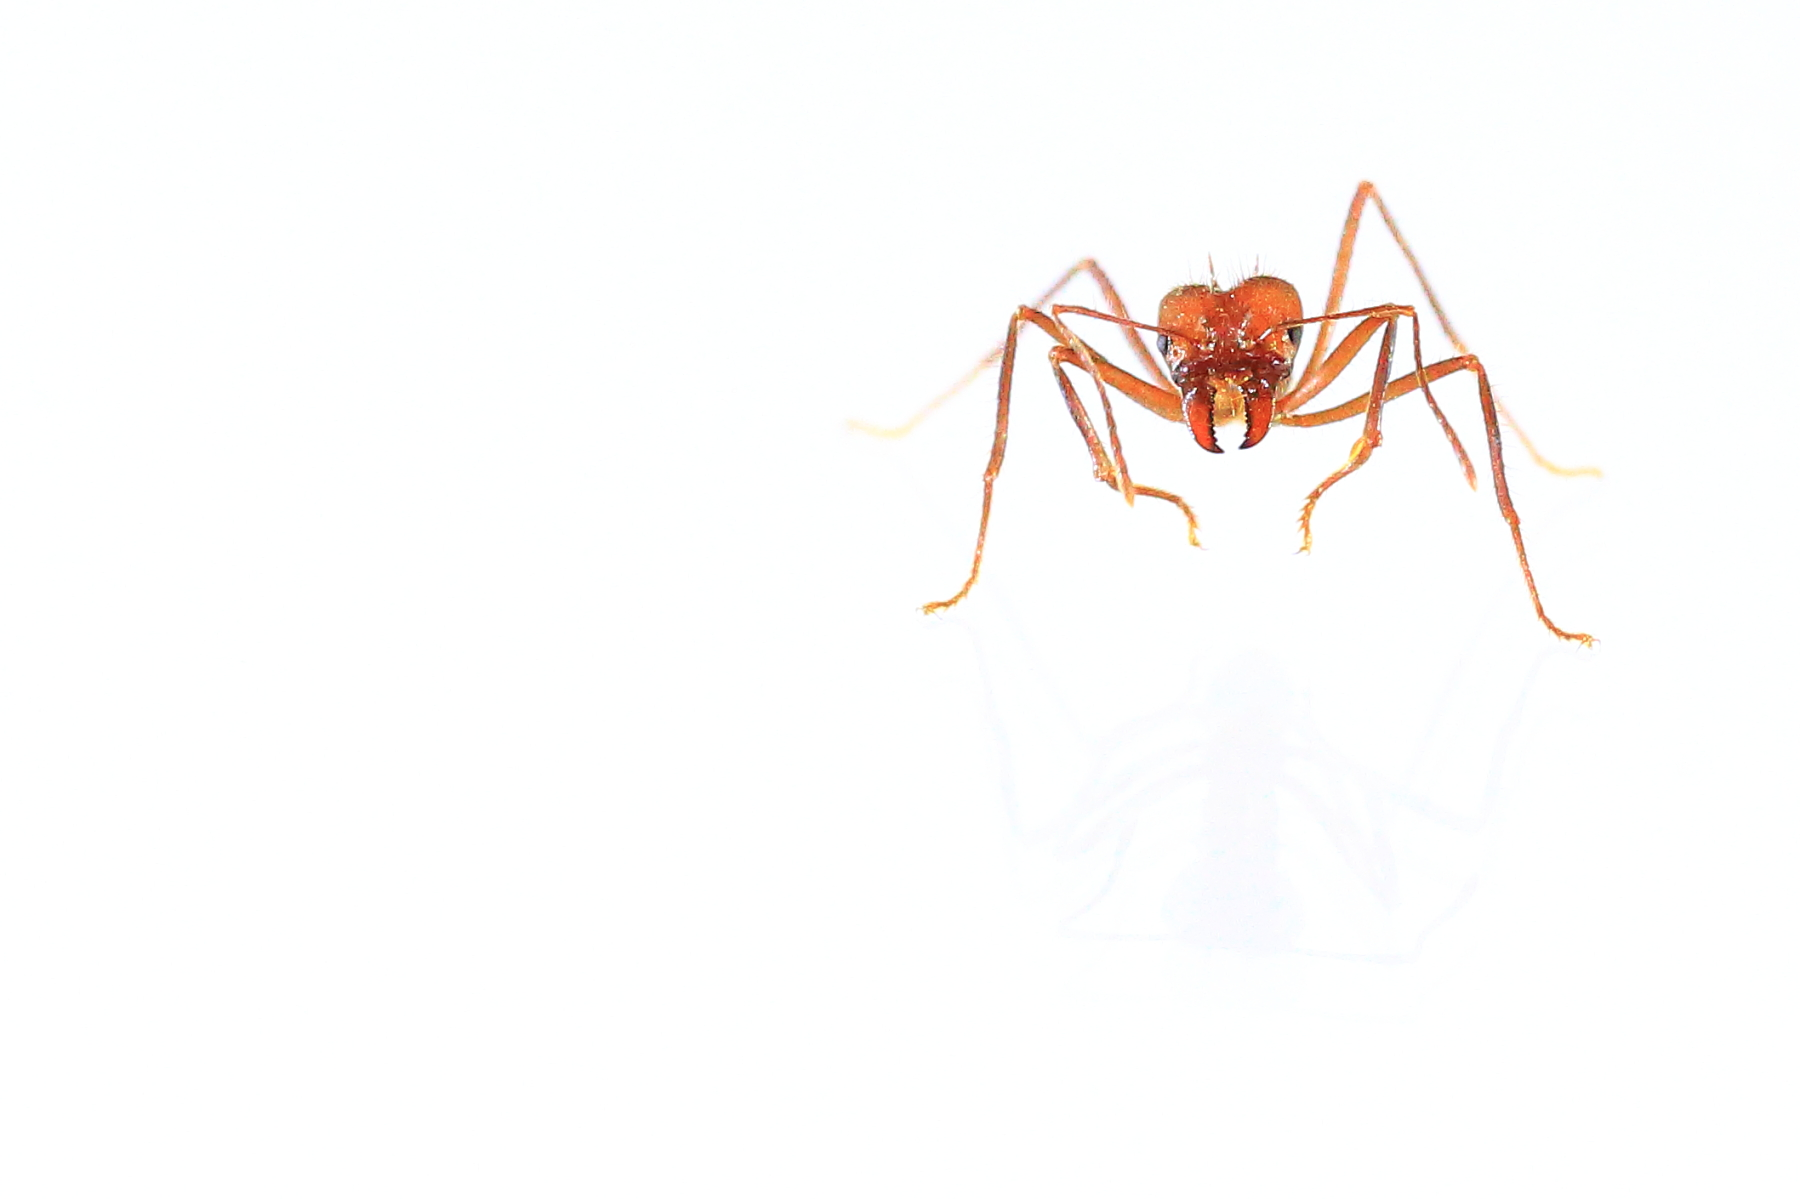 Fire ant on white background